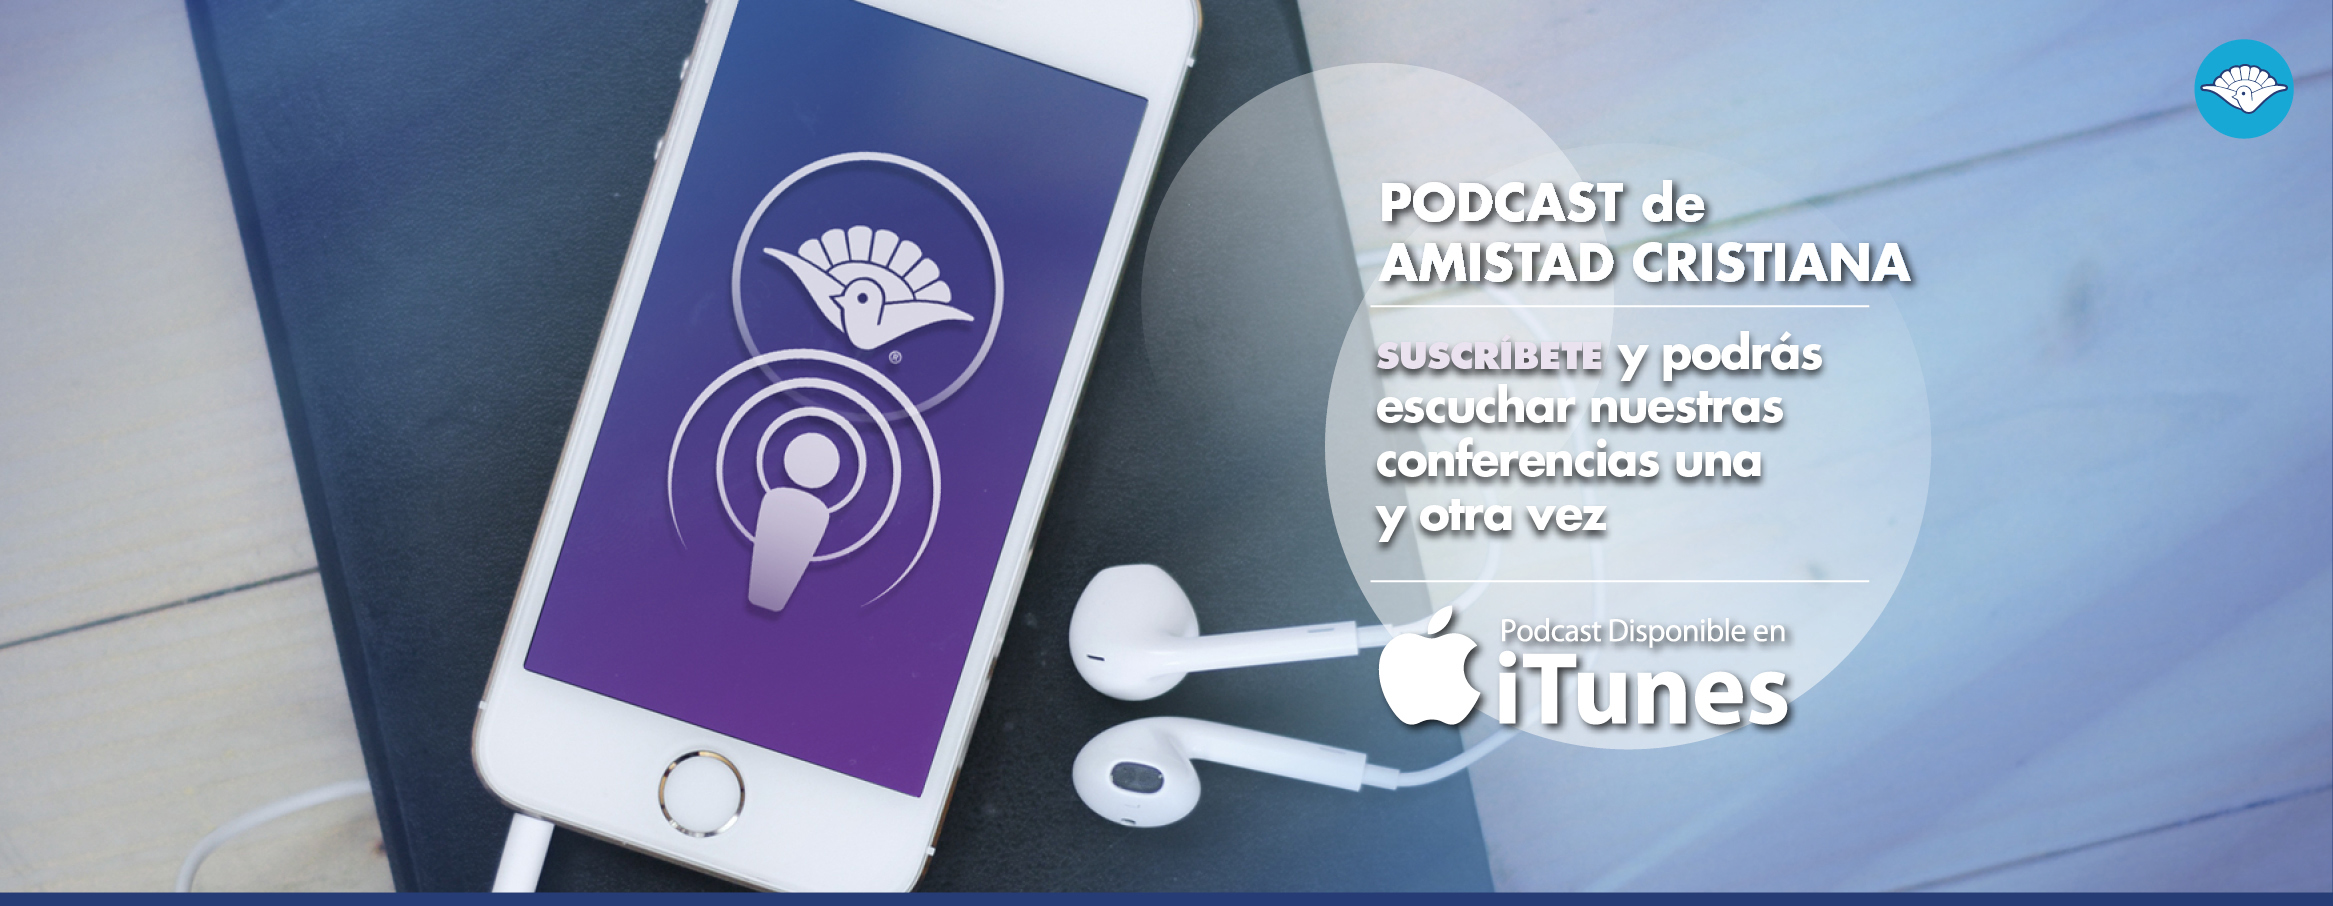 banner_SlideAC_20170125_PodcastApp